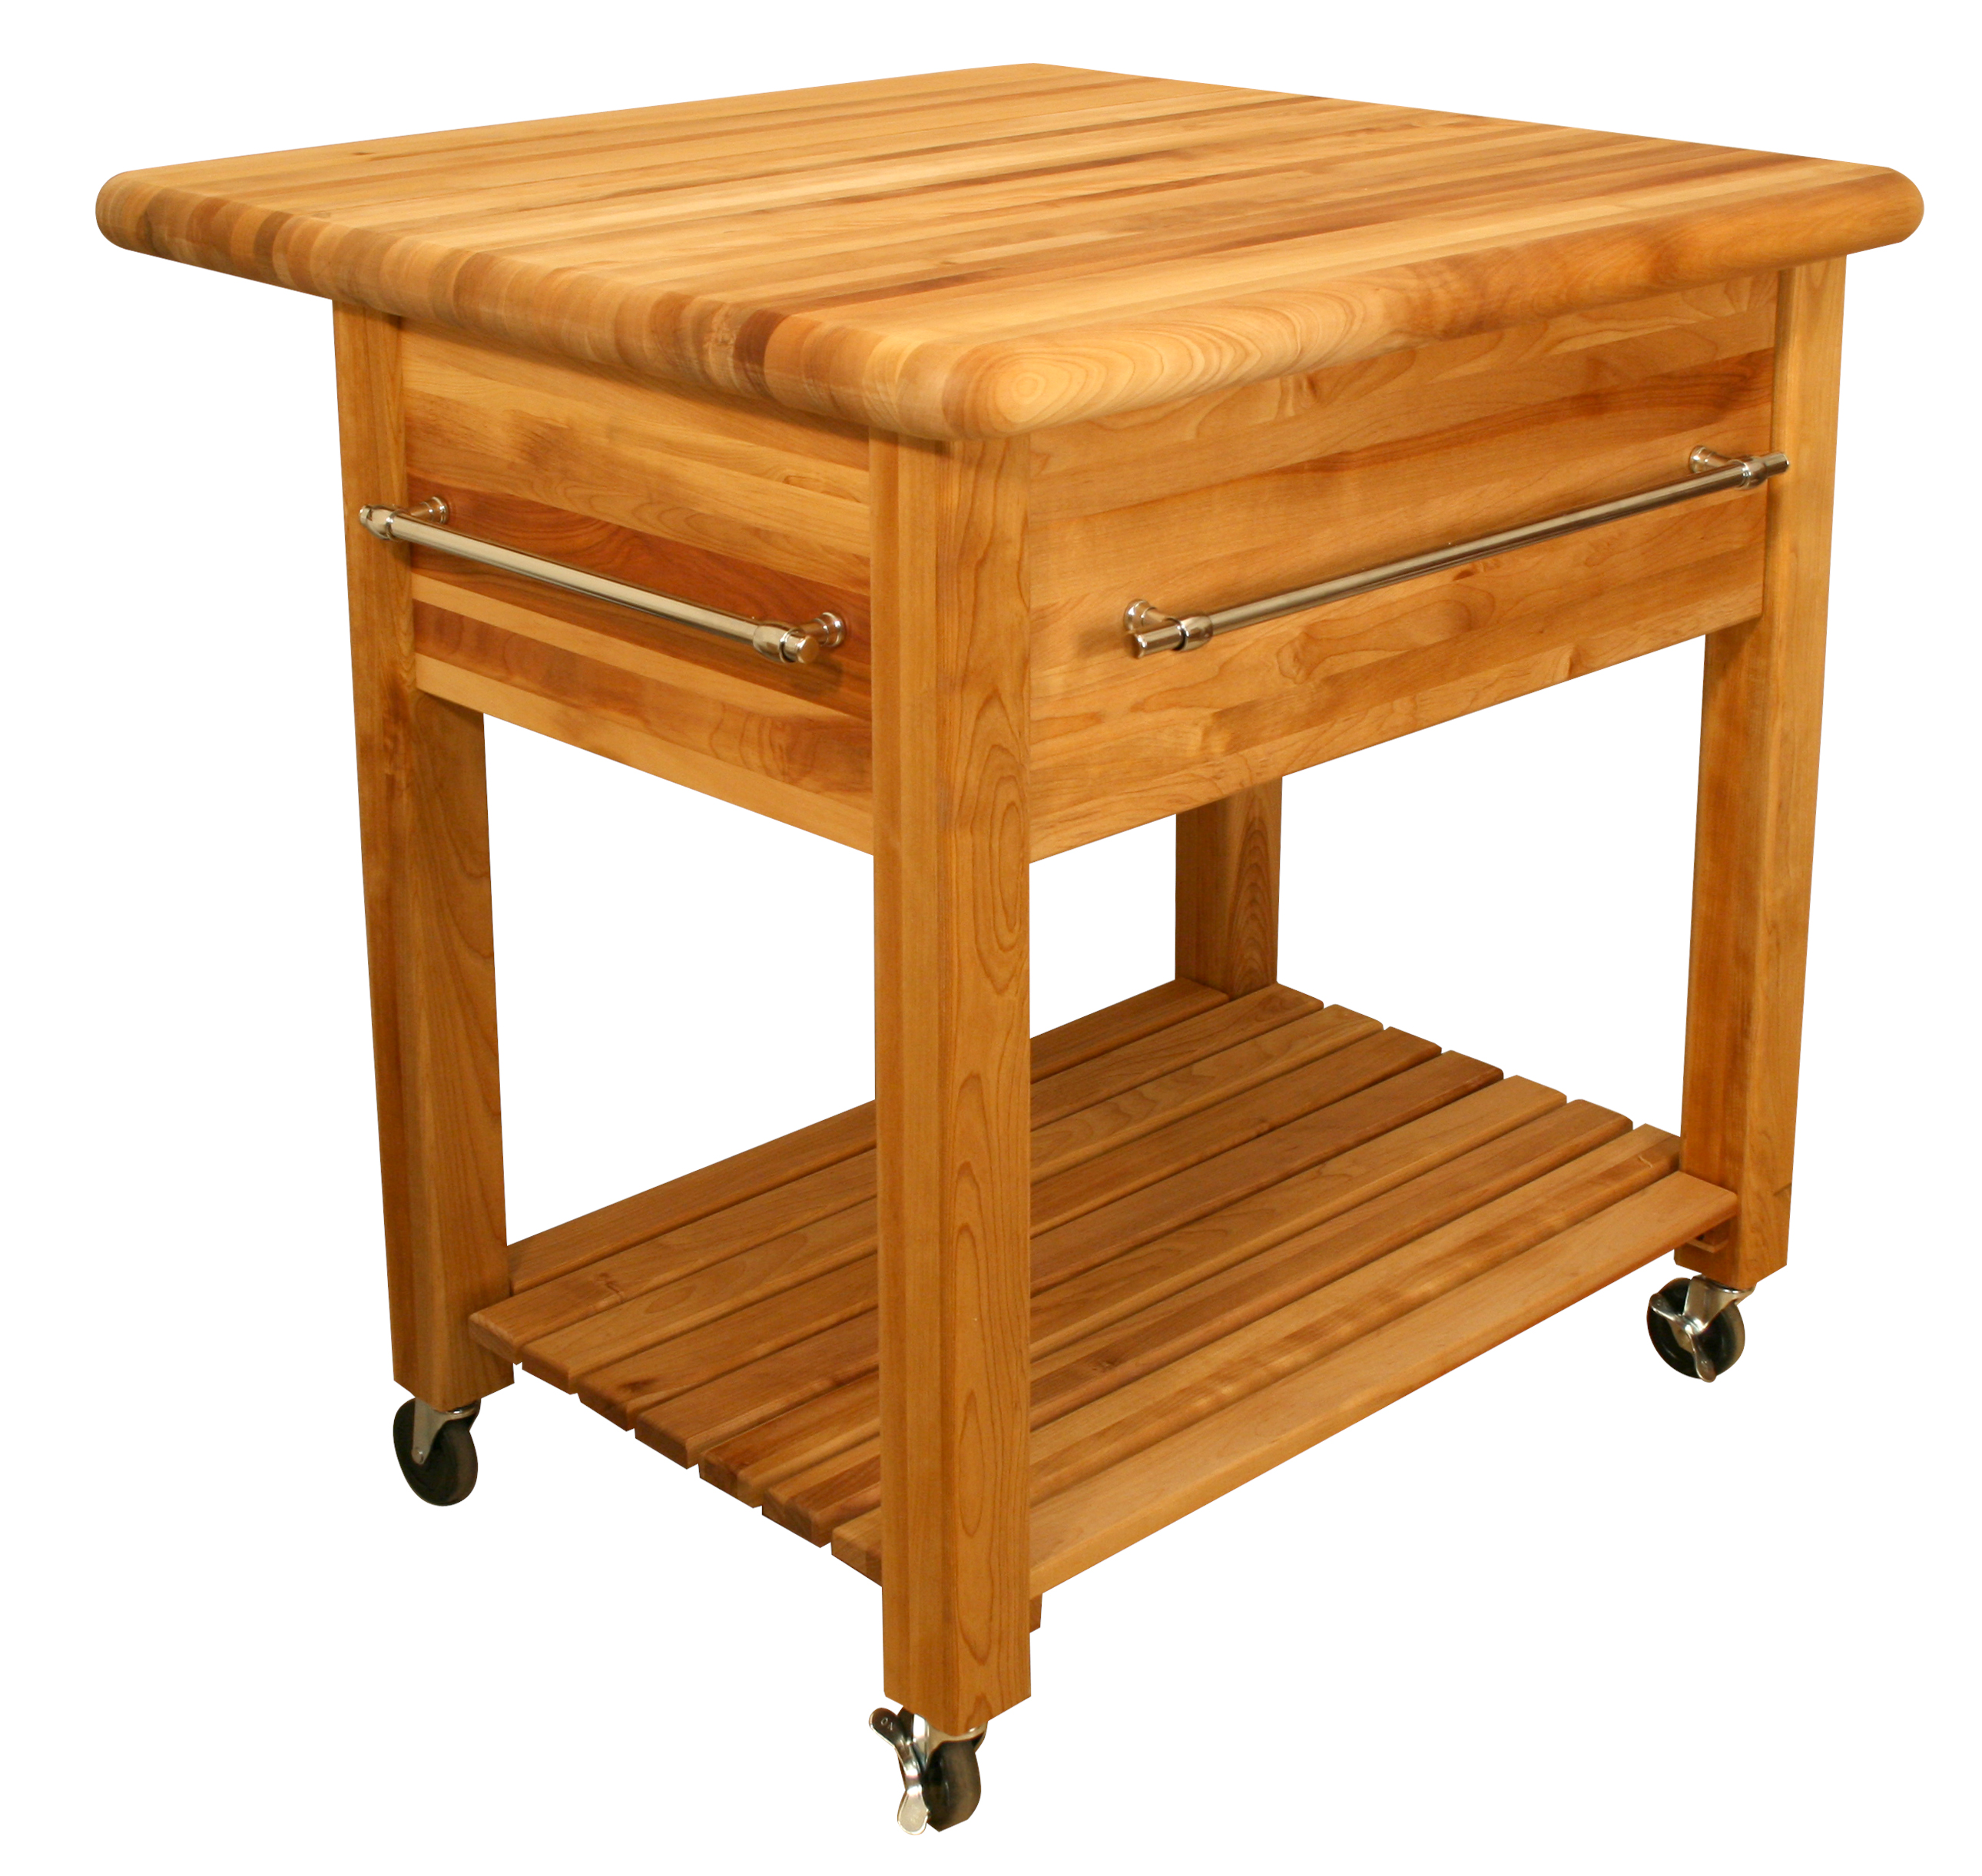 Butcher block kitchen carts john boos catskill - Small butcher block island ...